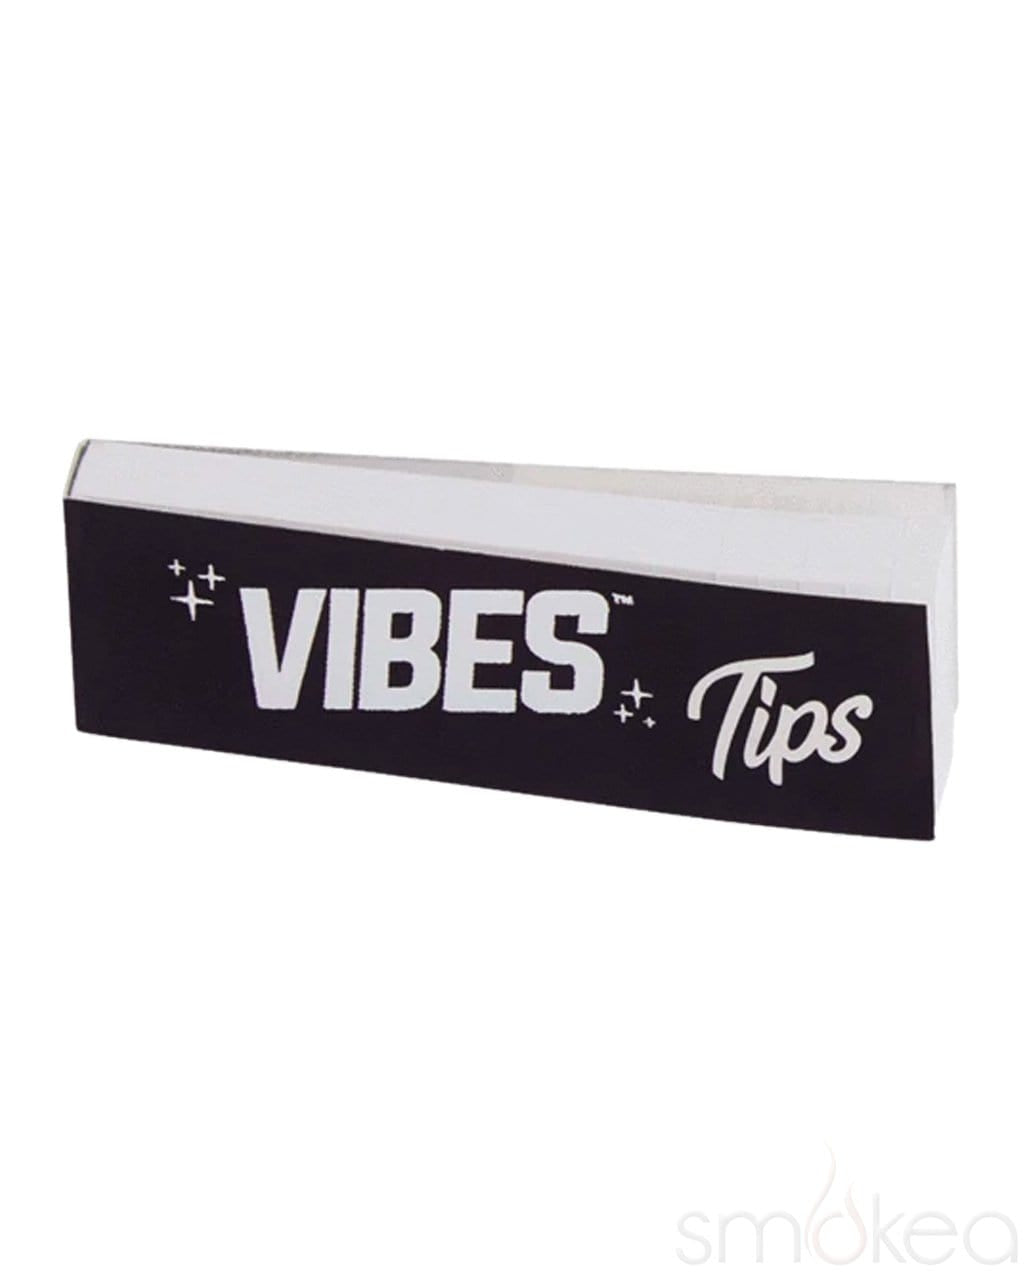 Vibes 1 1/4 Rolling Paper Tips - SMOKEA